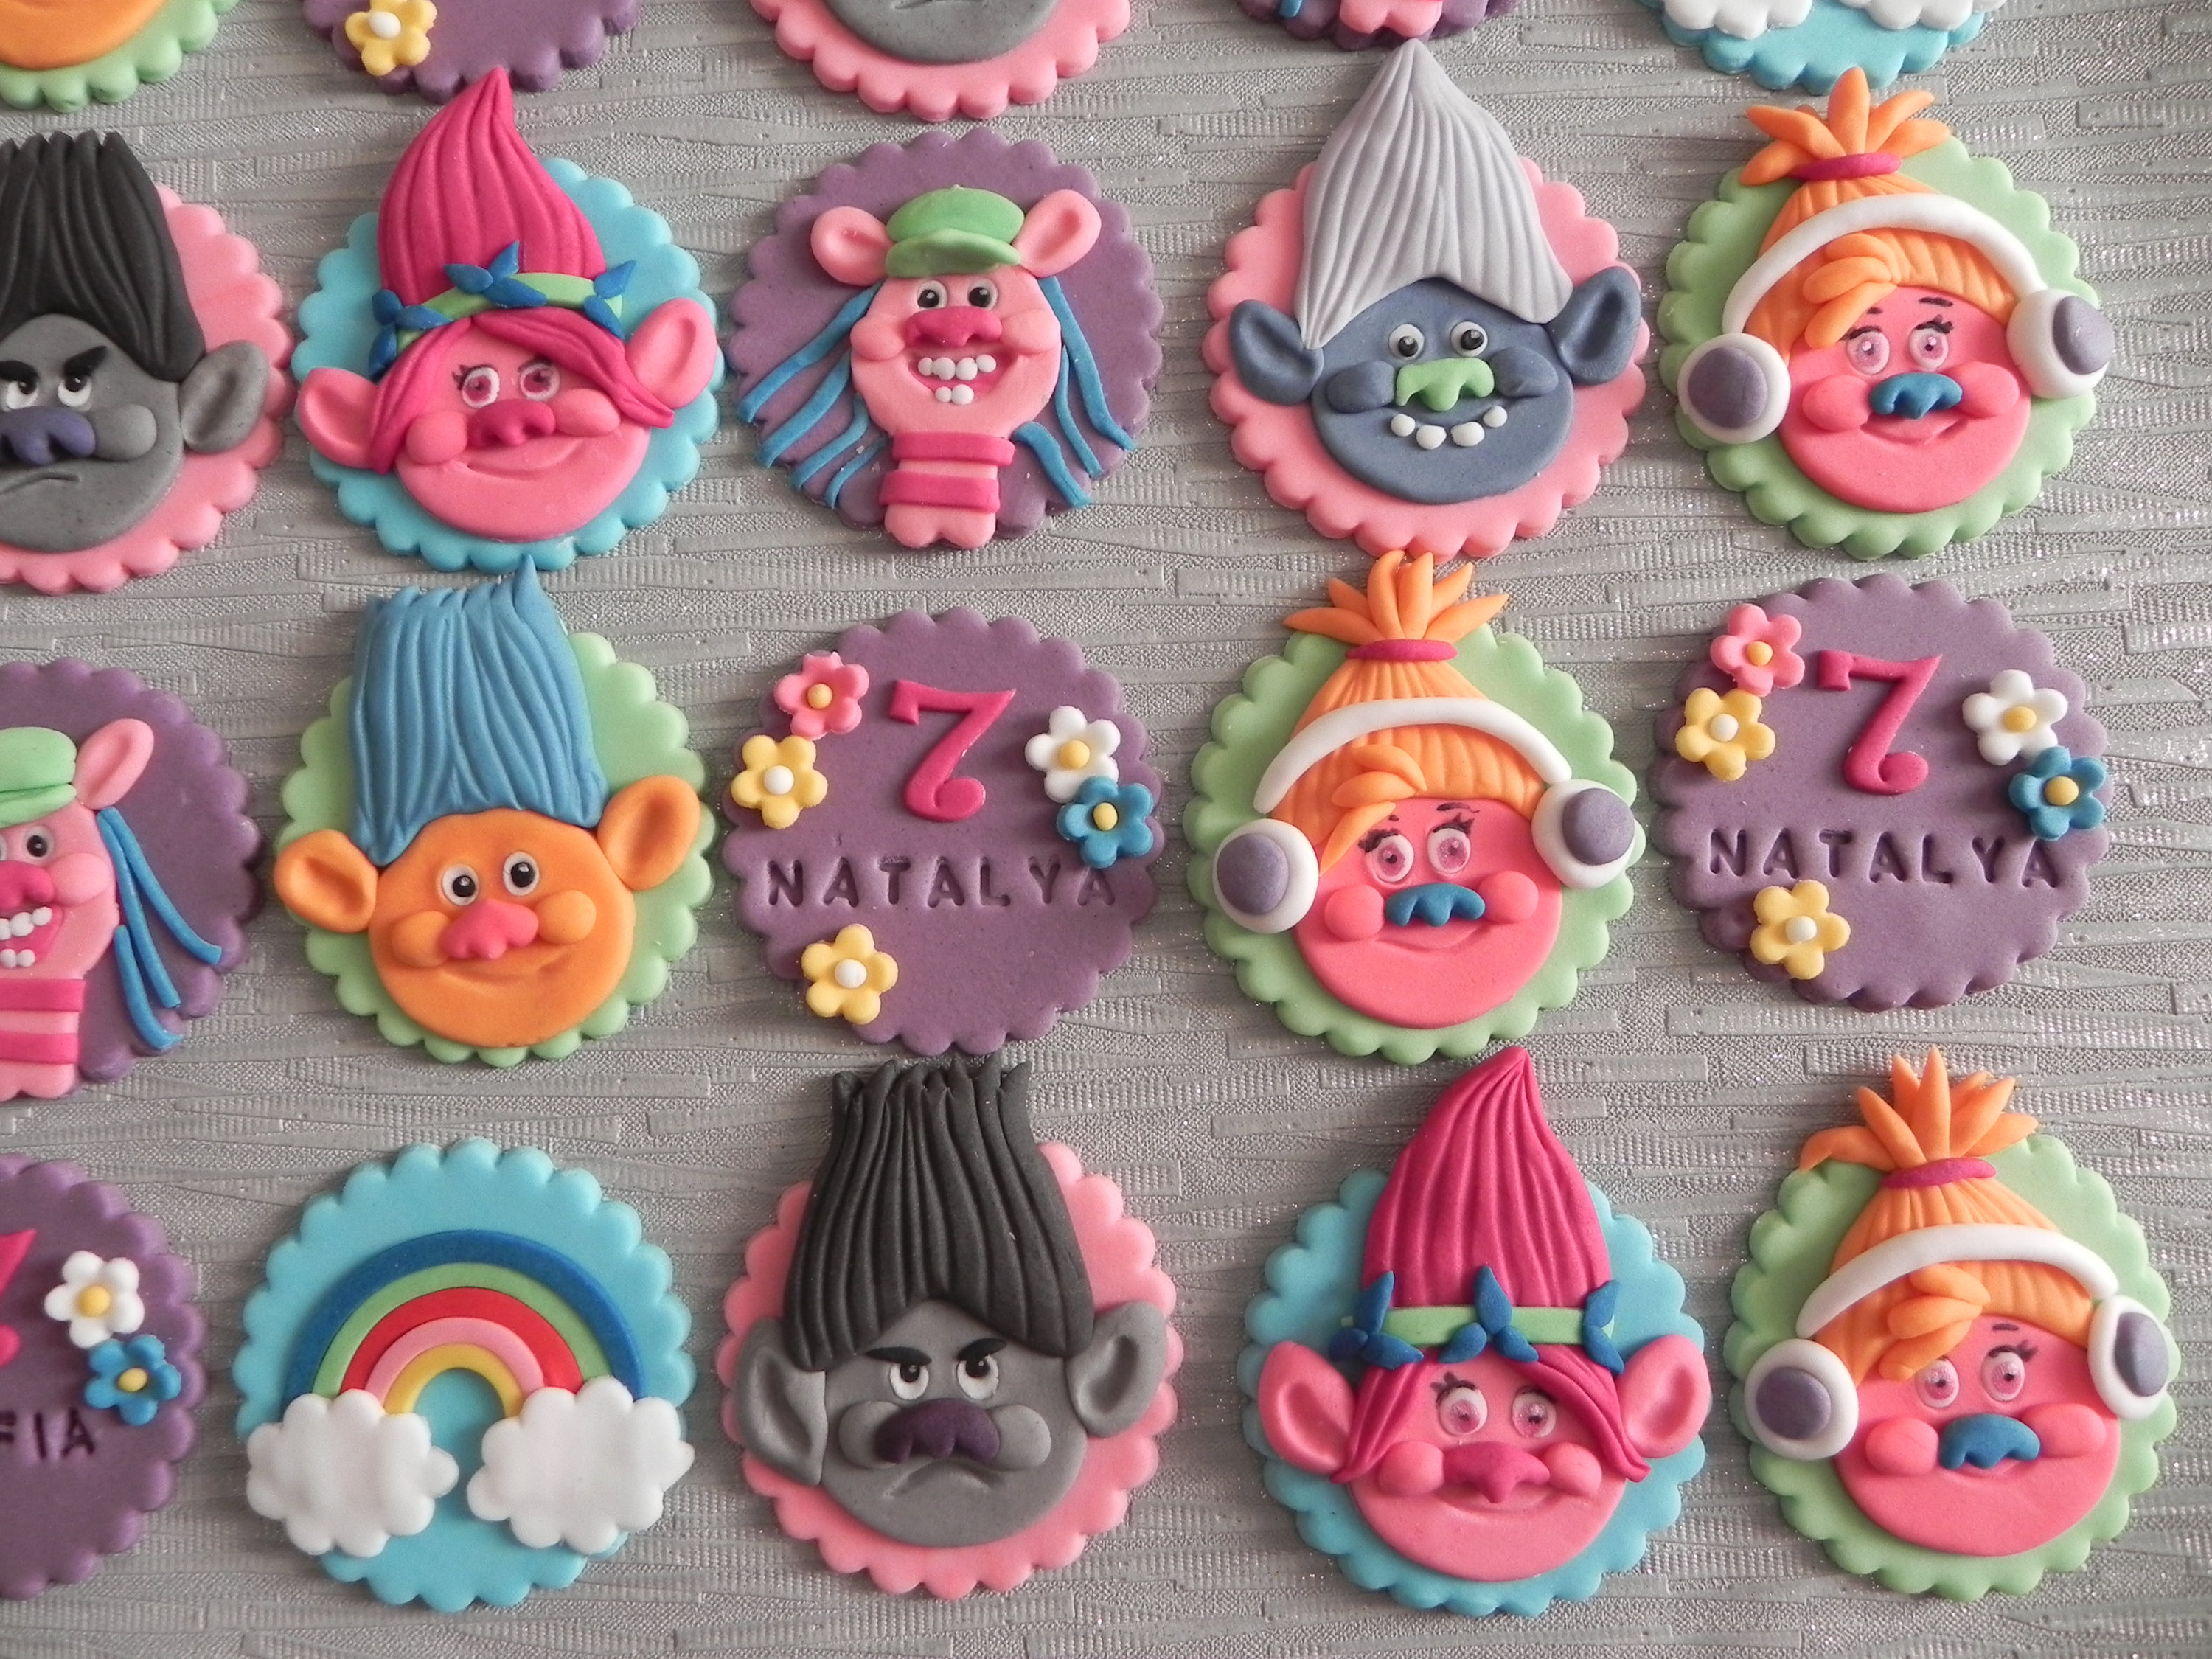 Fondant Cupcake Toppers Are The Easiest Way To Take Basic Cupcakes From Boring Awesome These Trolls Cake By Maris